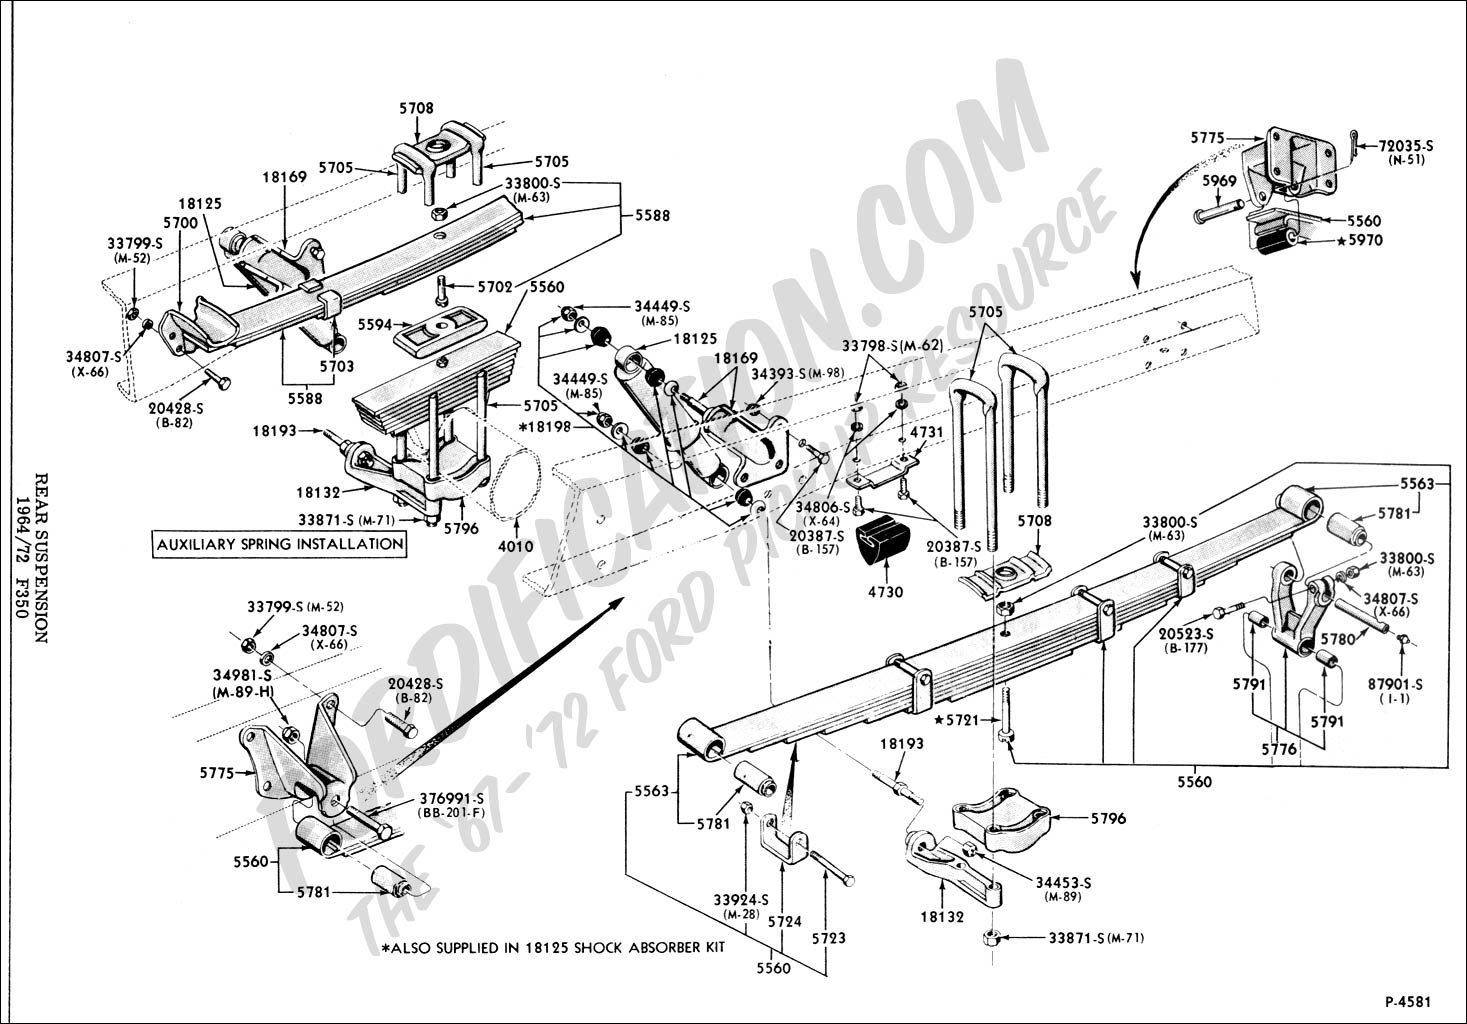 2002 Chevy Silverado Headlight Wiring Diagram Chevrolet In And besides 4l60e Transmission Shift Solenoid Wiring Diagram furthermore How A Brake Light Switch Works furthermore Front Axle Replacement Cost likewise Grounding Wire Location Help Please 10069. on 1993 chevy 1500 wiring diagram